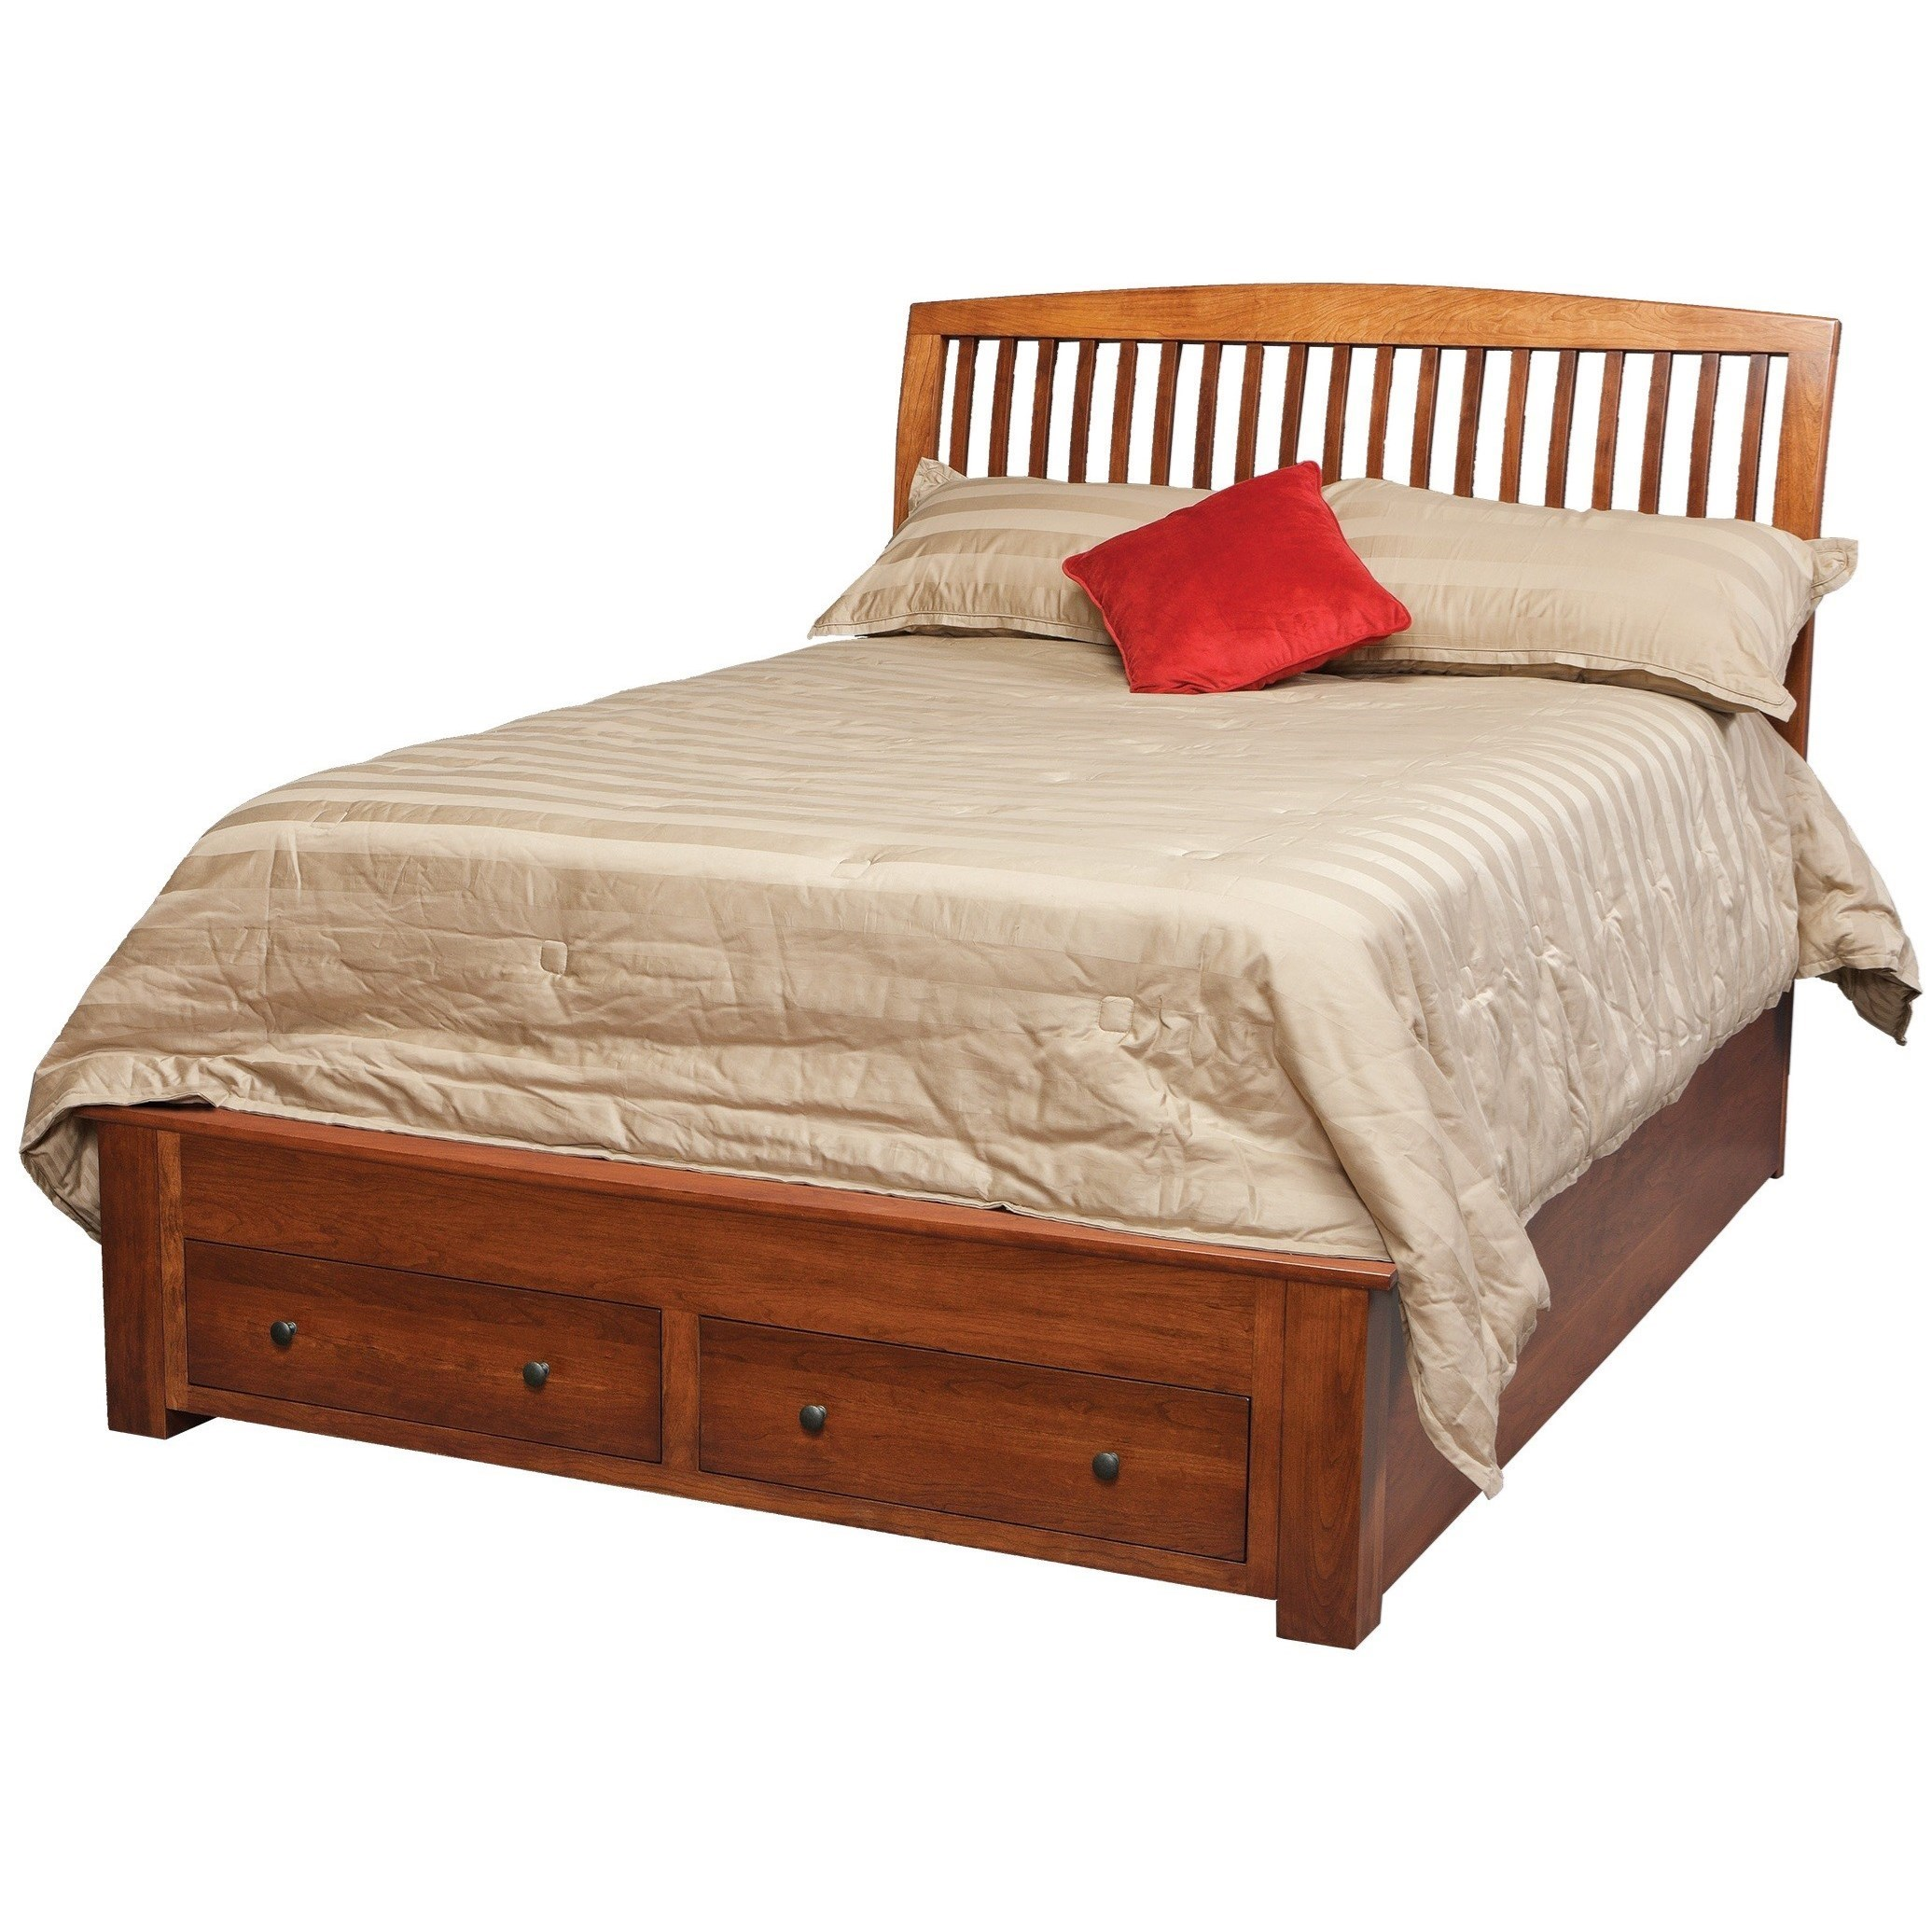 Danielu0027s Amish HolmesQueen Pedestal Bed With 2 Footboard Drawers ...